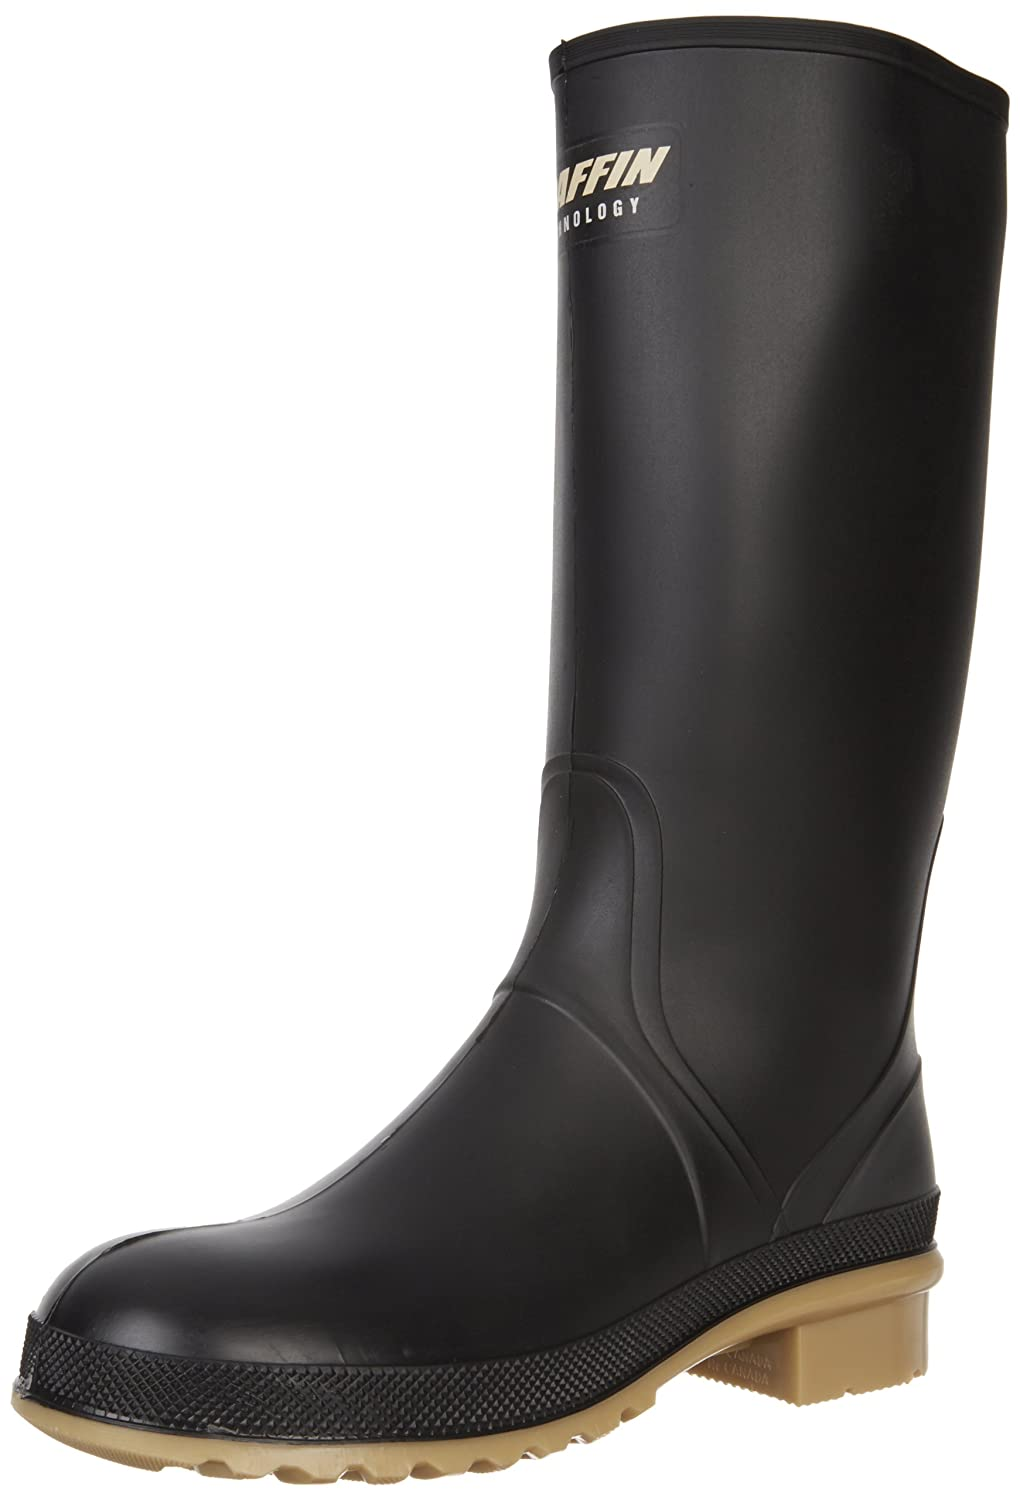 Baffin Women's Prime Rain Boot B006SVYE70 5 B(M) US|Black/Amber